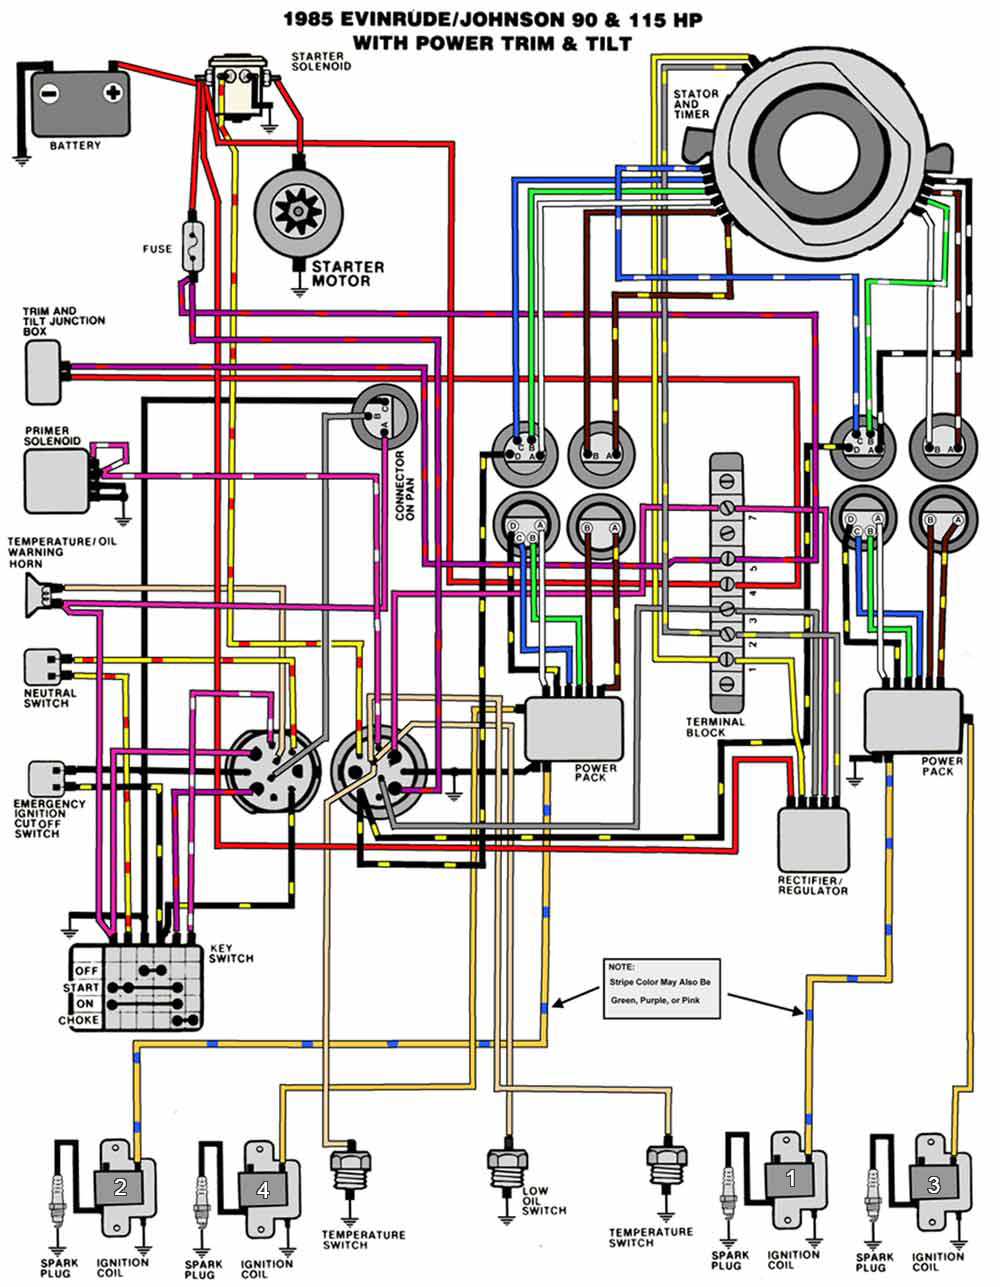 1985_90_115TnT mastertech marine evinrude johnson outboard wiring diagrams  at cita.asia